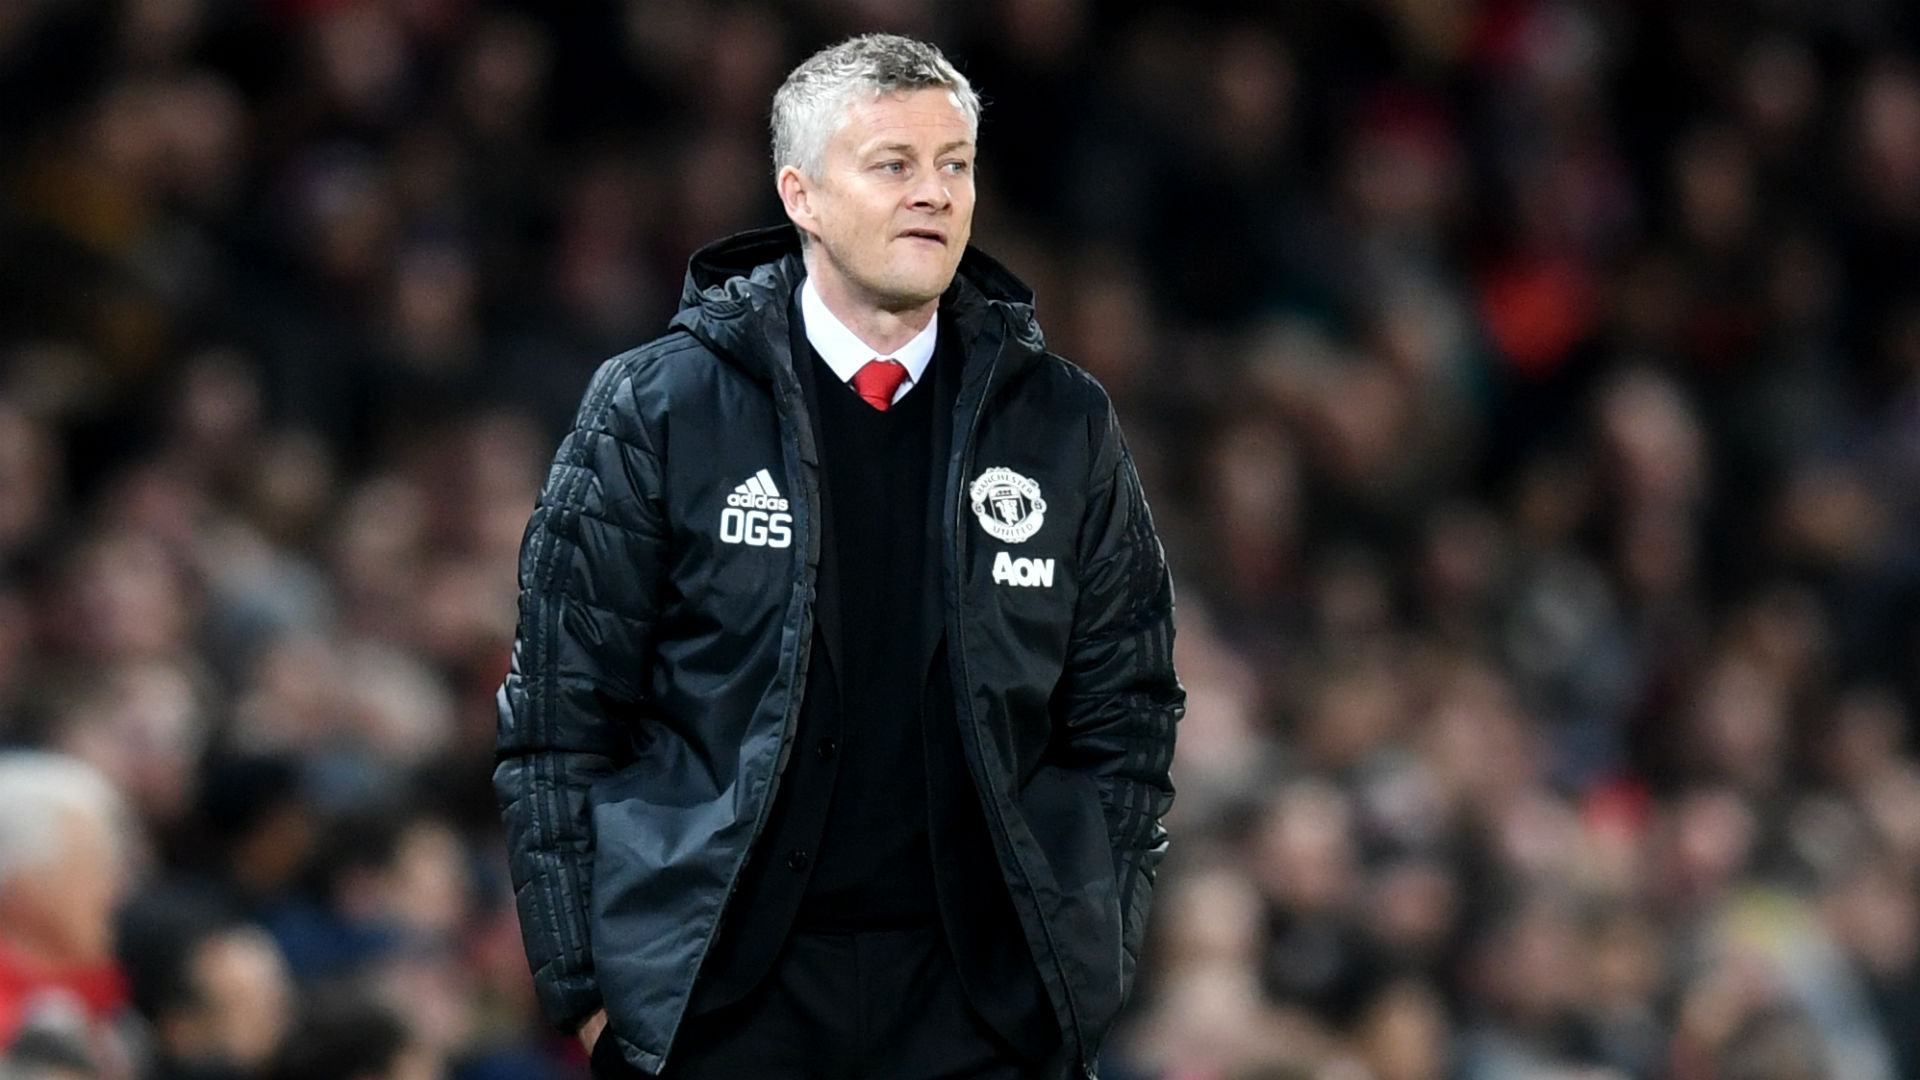 Solskjaer insists Manchester United 'played well' in Arsenal defeat